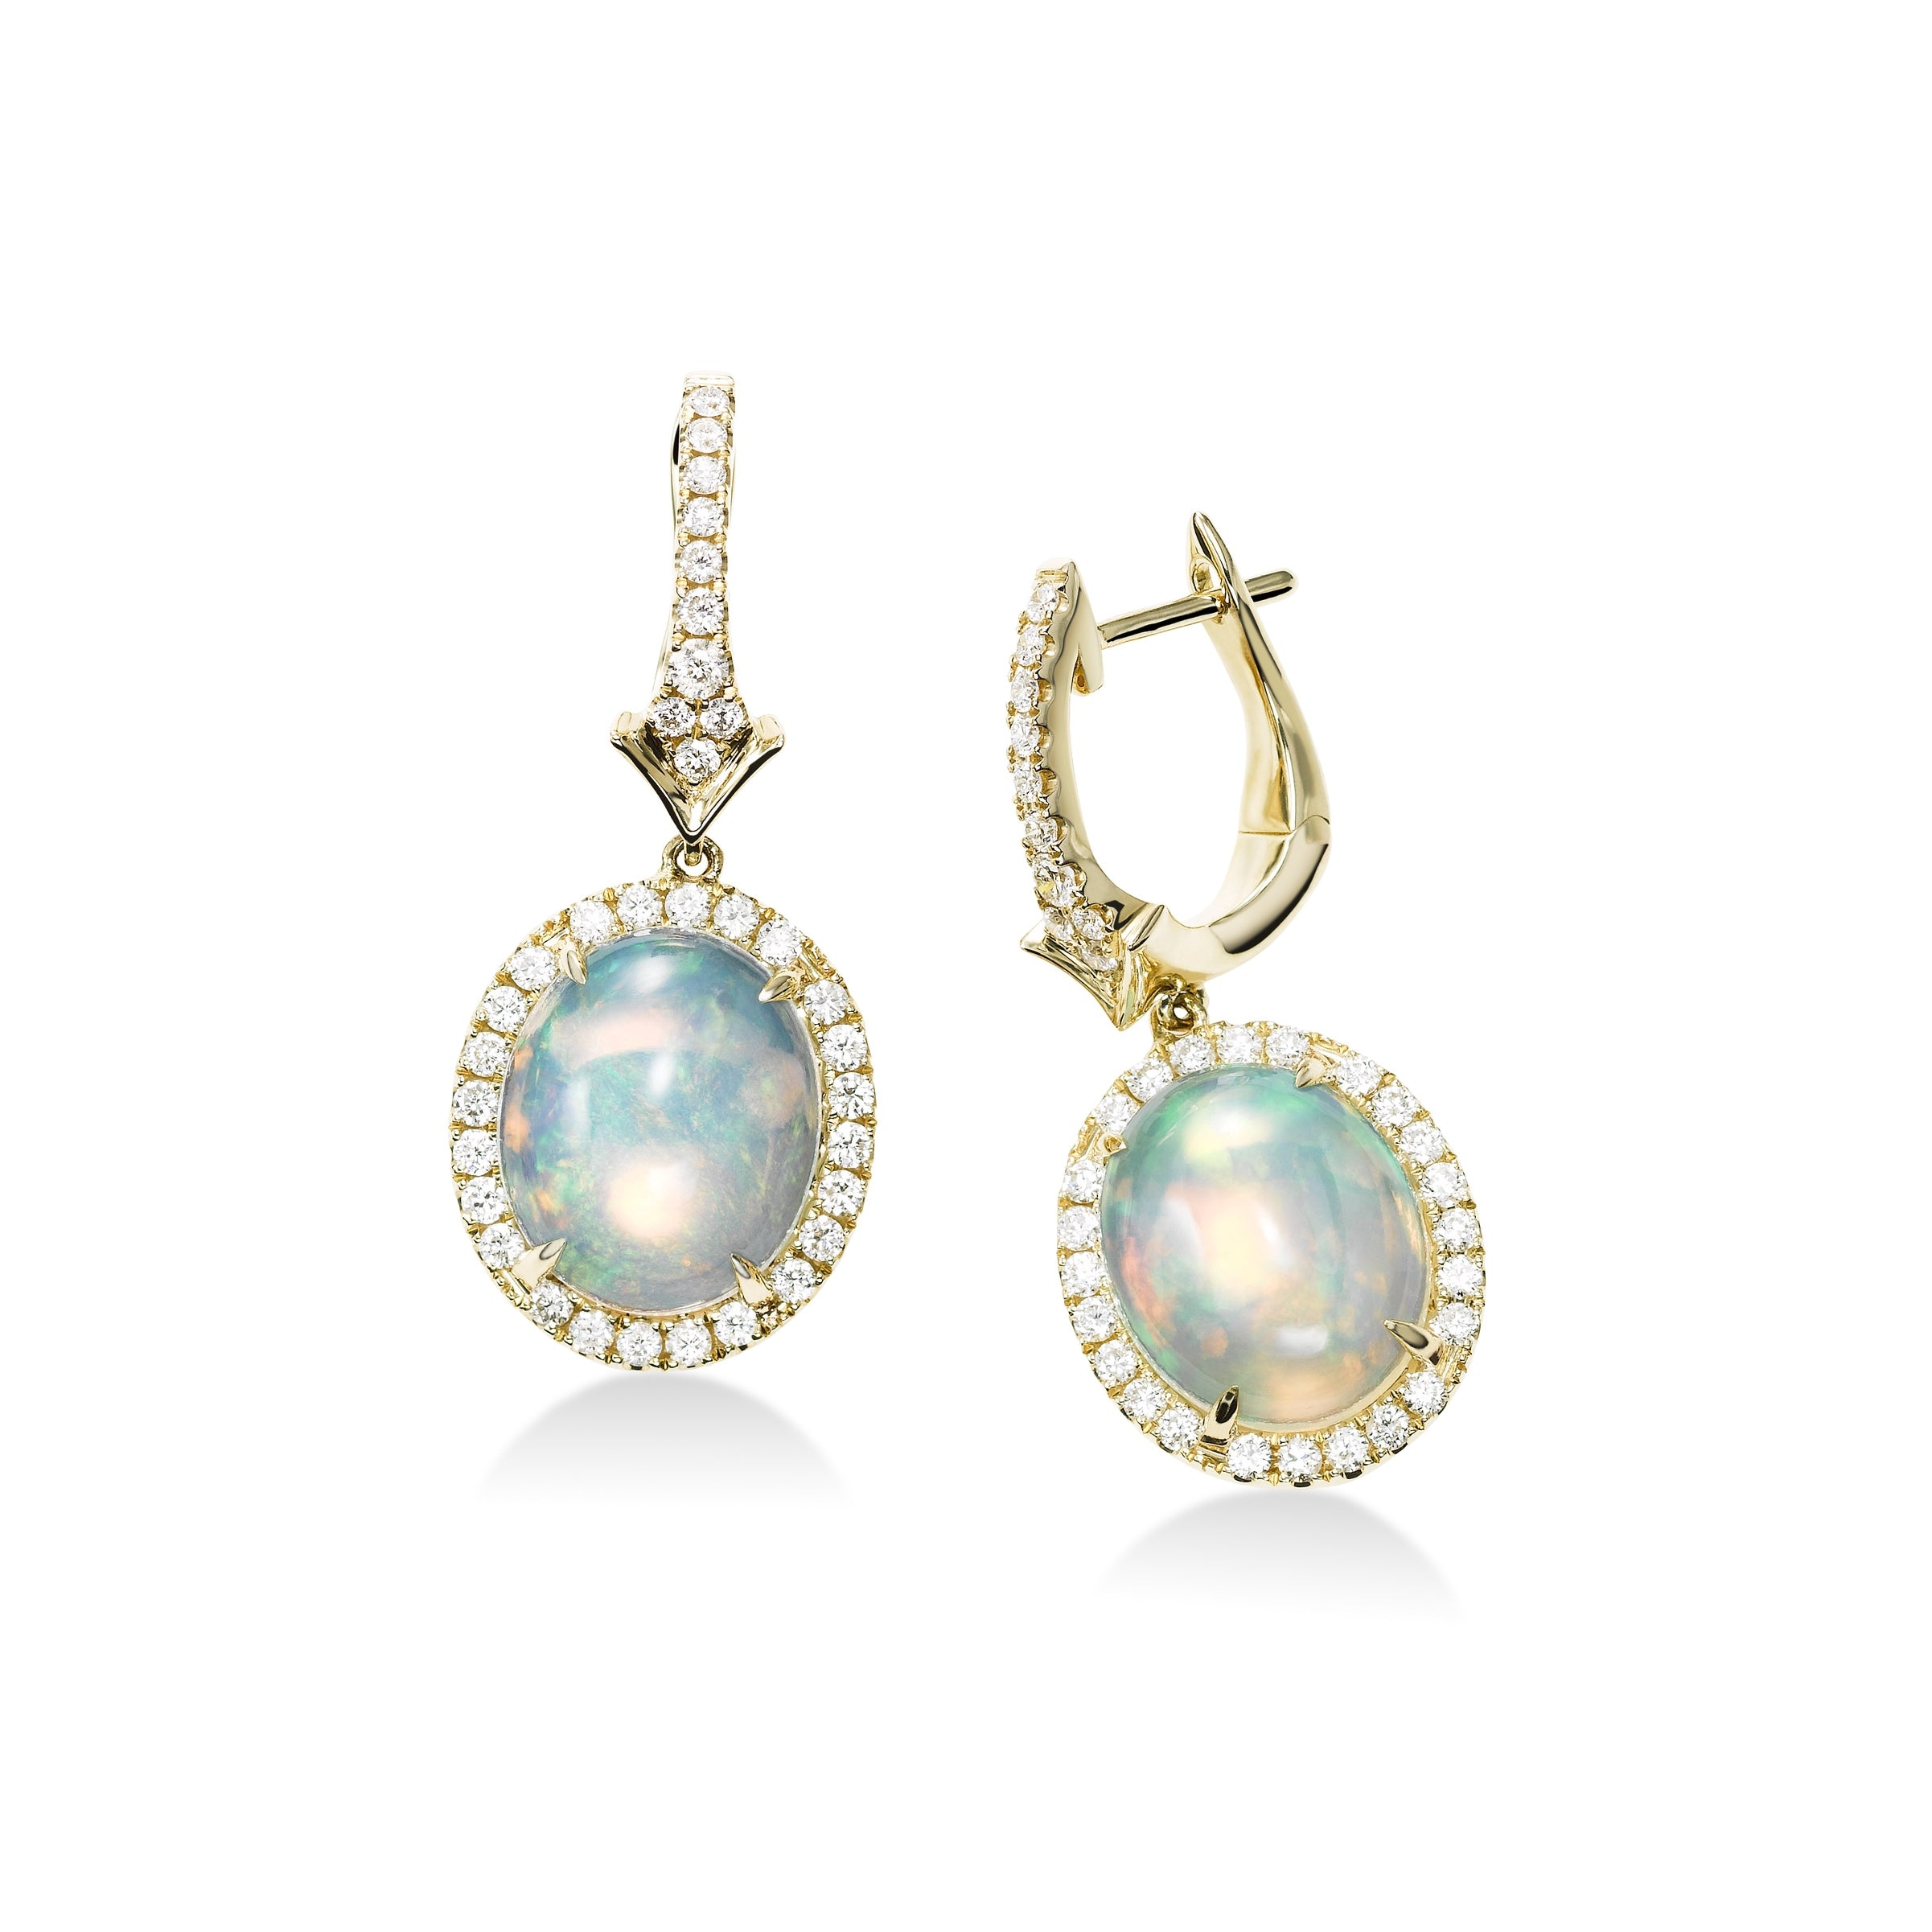 Oval Opal and Diamond Drop Earrings, 14K Yellow Gold